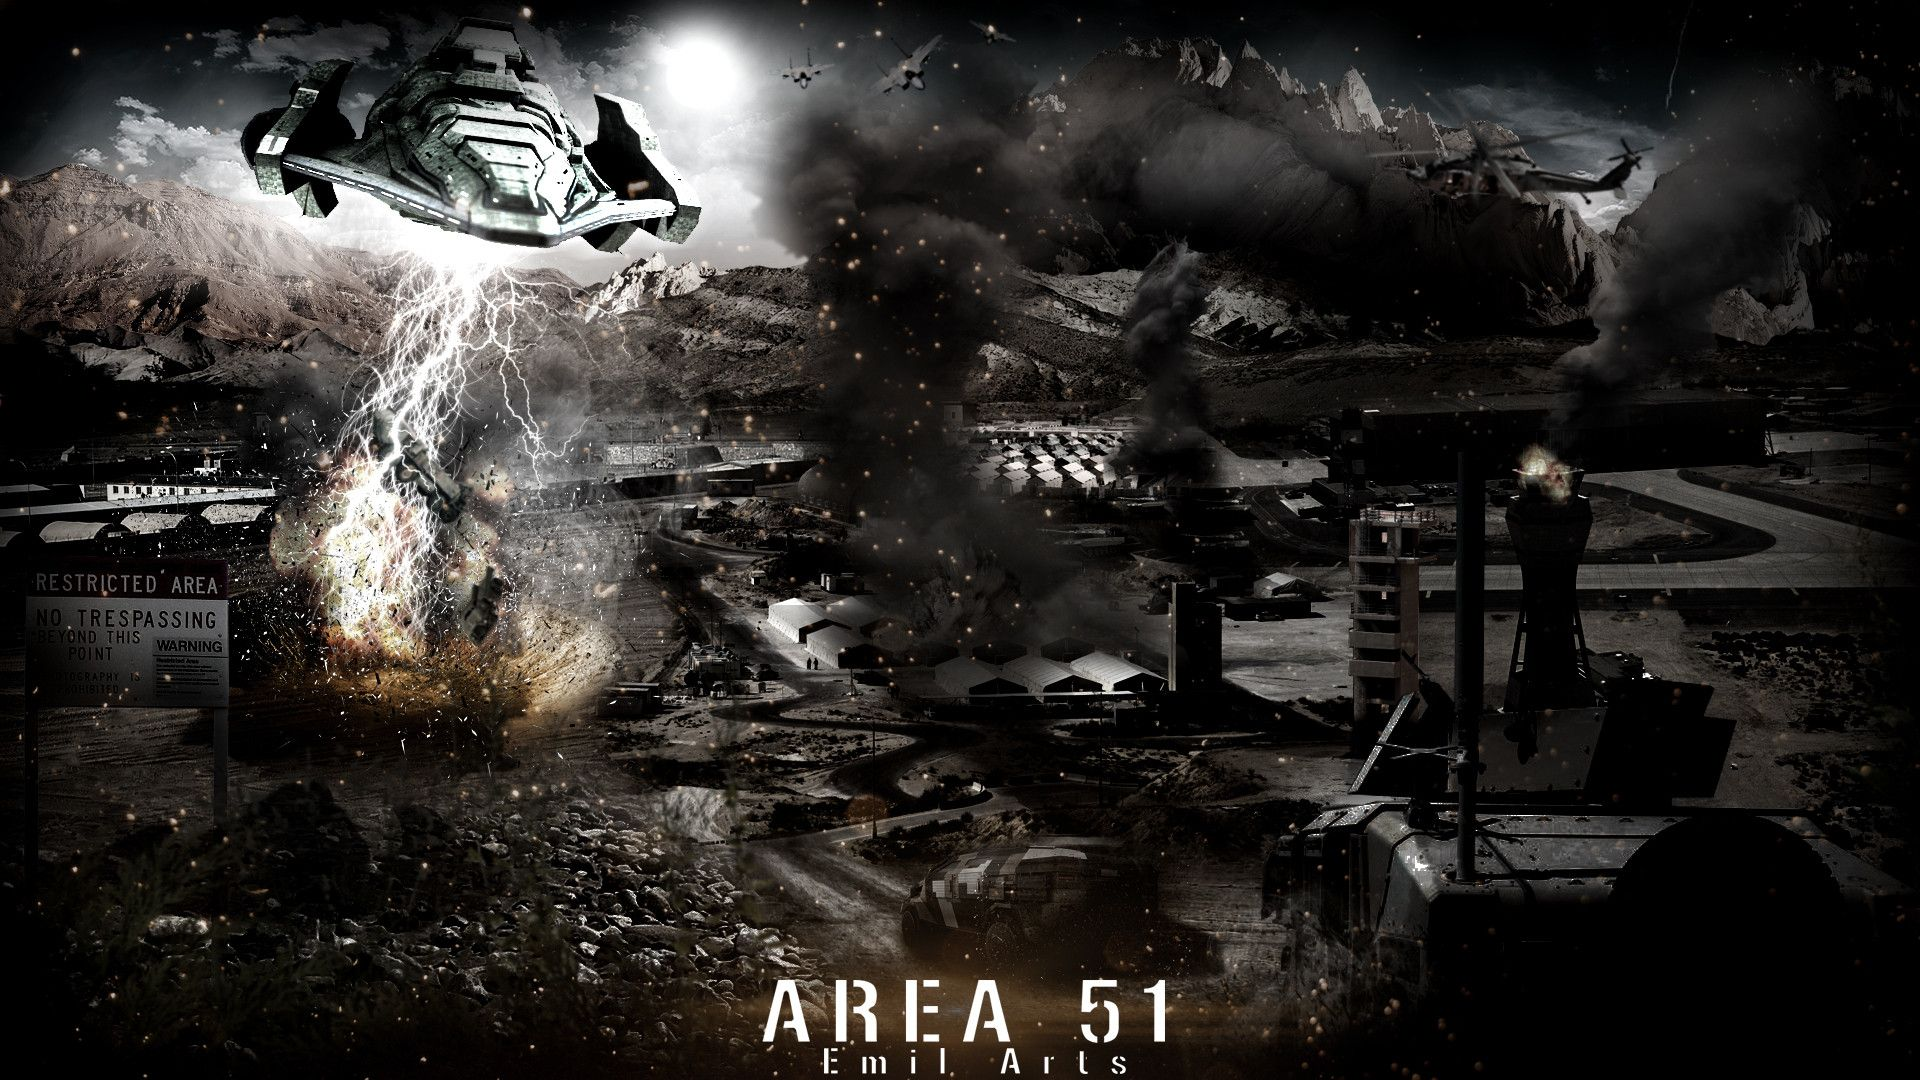 area 51 abstract An awesome alien t-shirt that for people that are sasquatch, conspiracy, ufo, area 51, bigfoot lovers makes a great gift for friends and family during gift giving occasions such as birthdays, christmas, graduation, showers, etc.